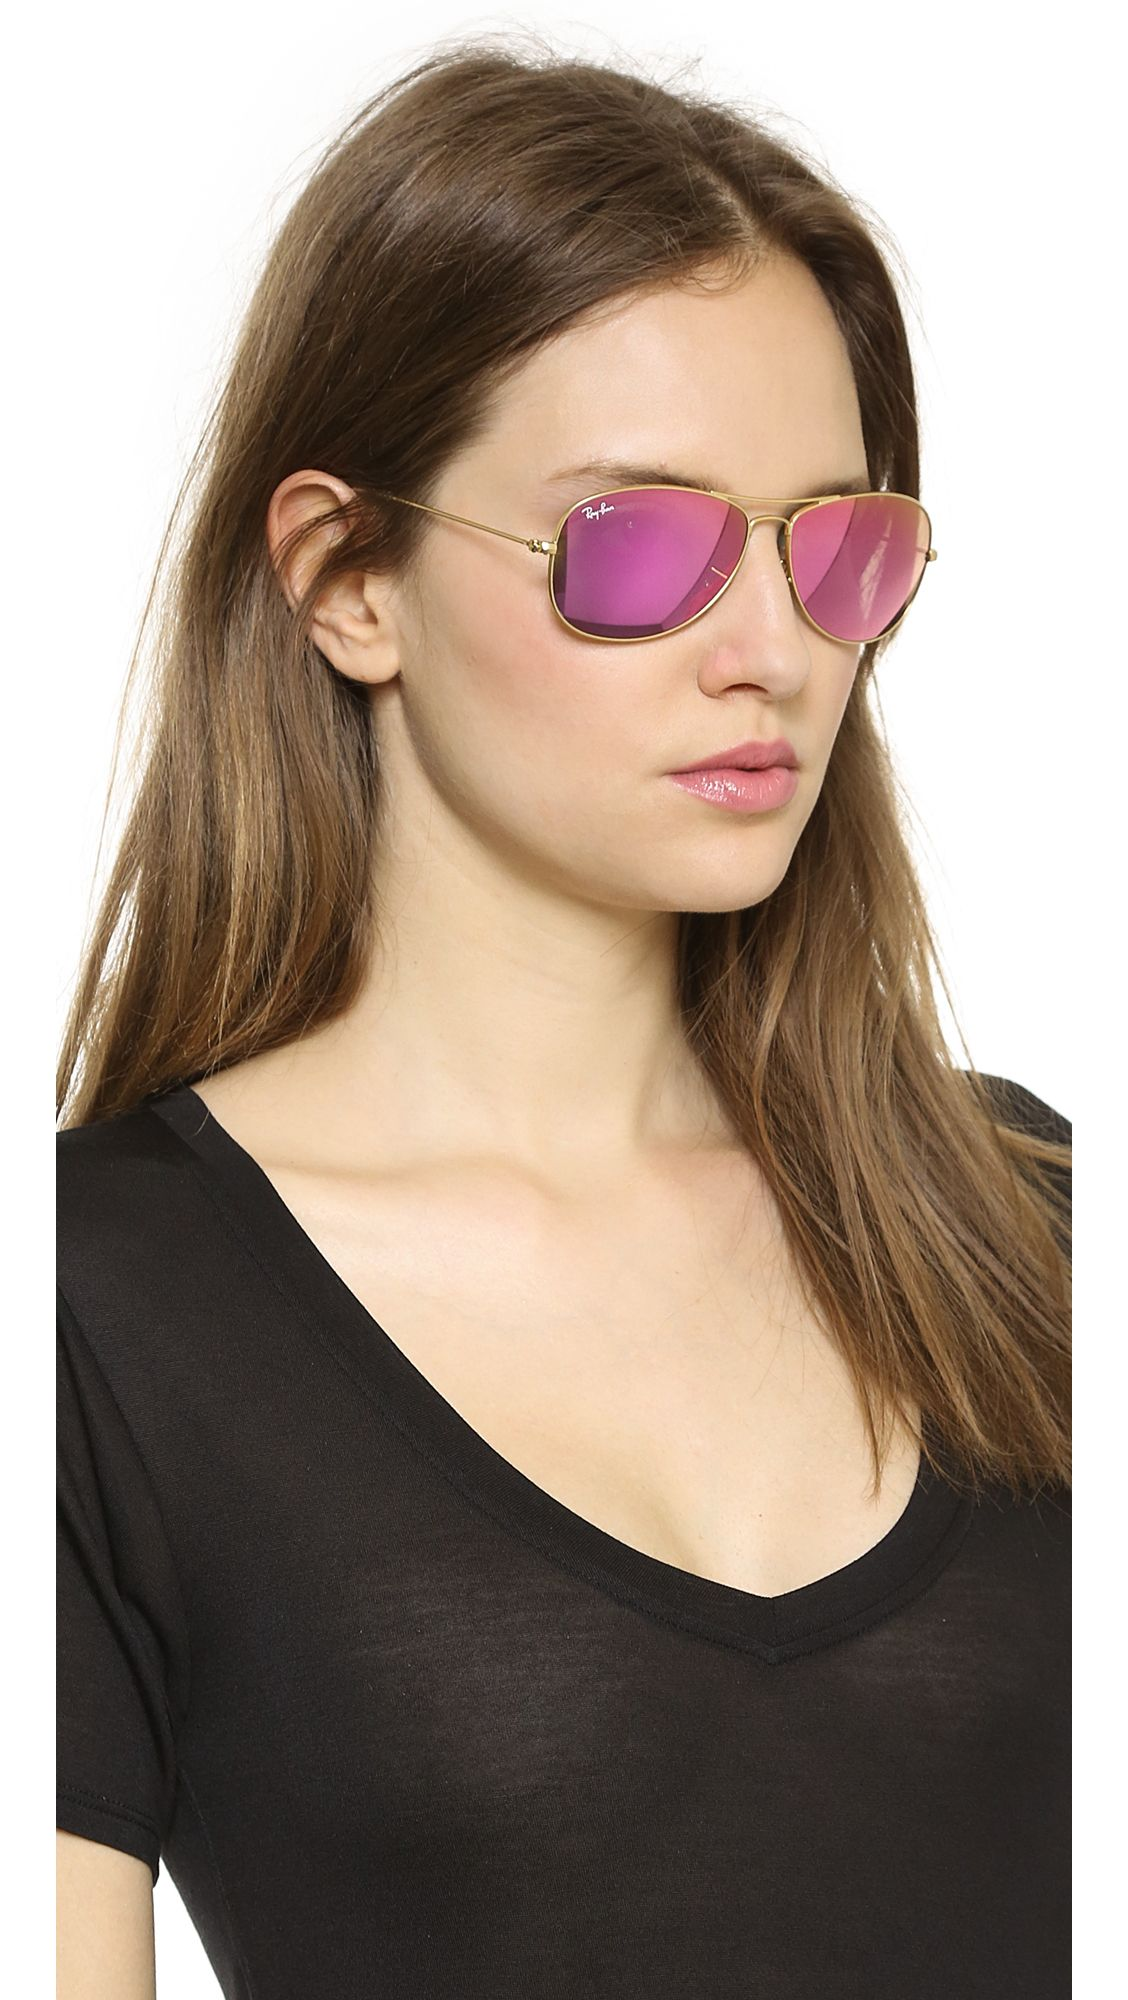 cc63a271a4 Ray-ban Polarized Aviator Sunglasses Crystal Pink in Pink (CRYSTAL PINK)